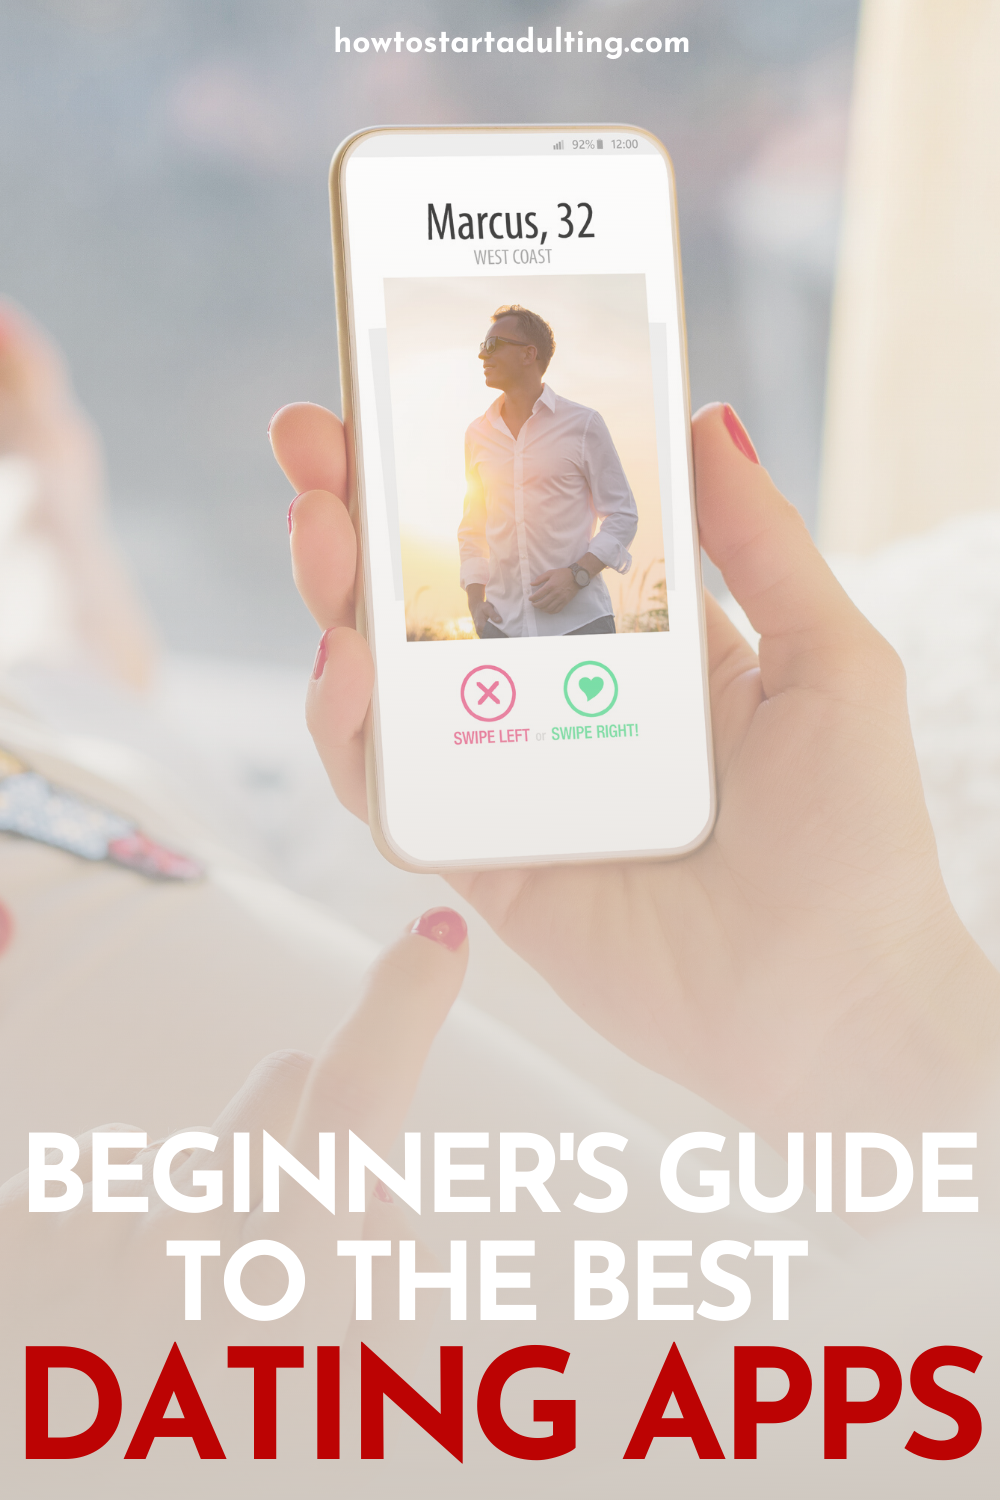 Ready For Online Dating_ Beginner's Guide To The Best Dating Apps #dating #relationships #onlinedating #datingapps #datingapp